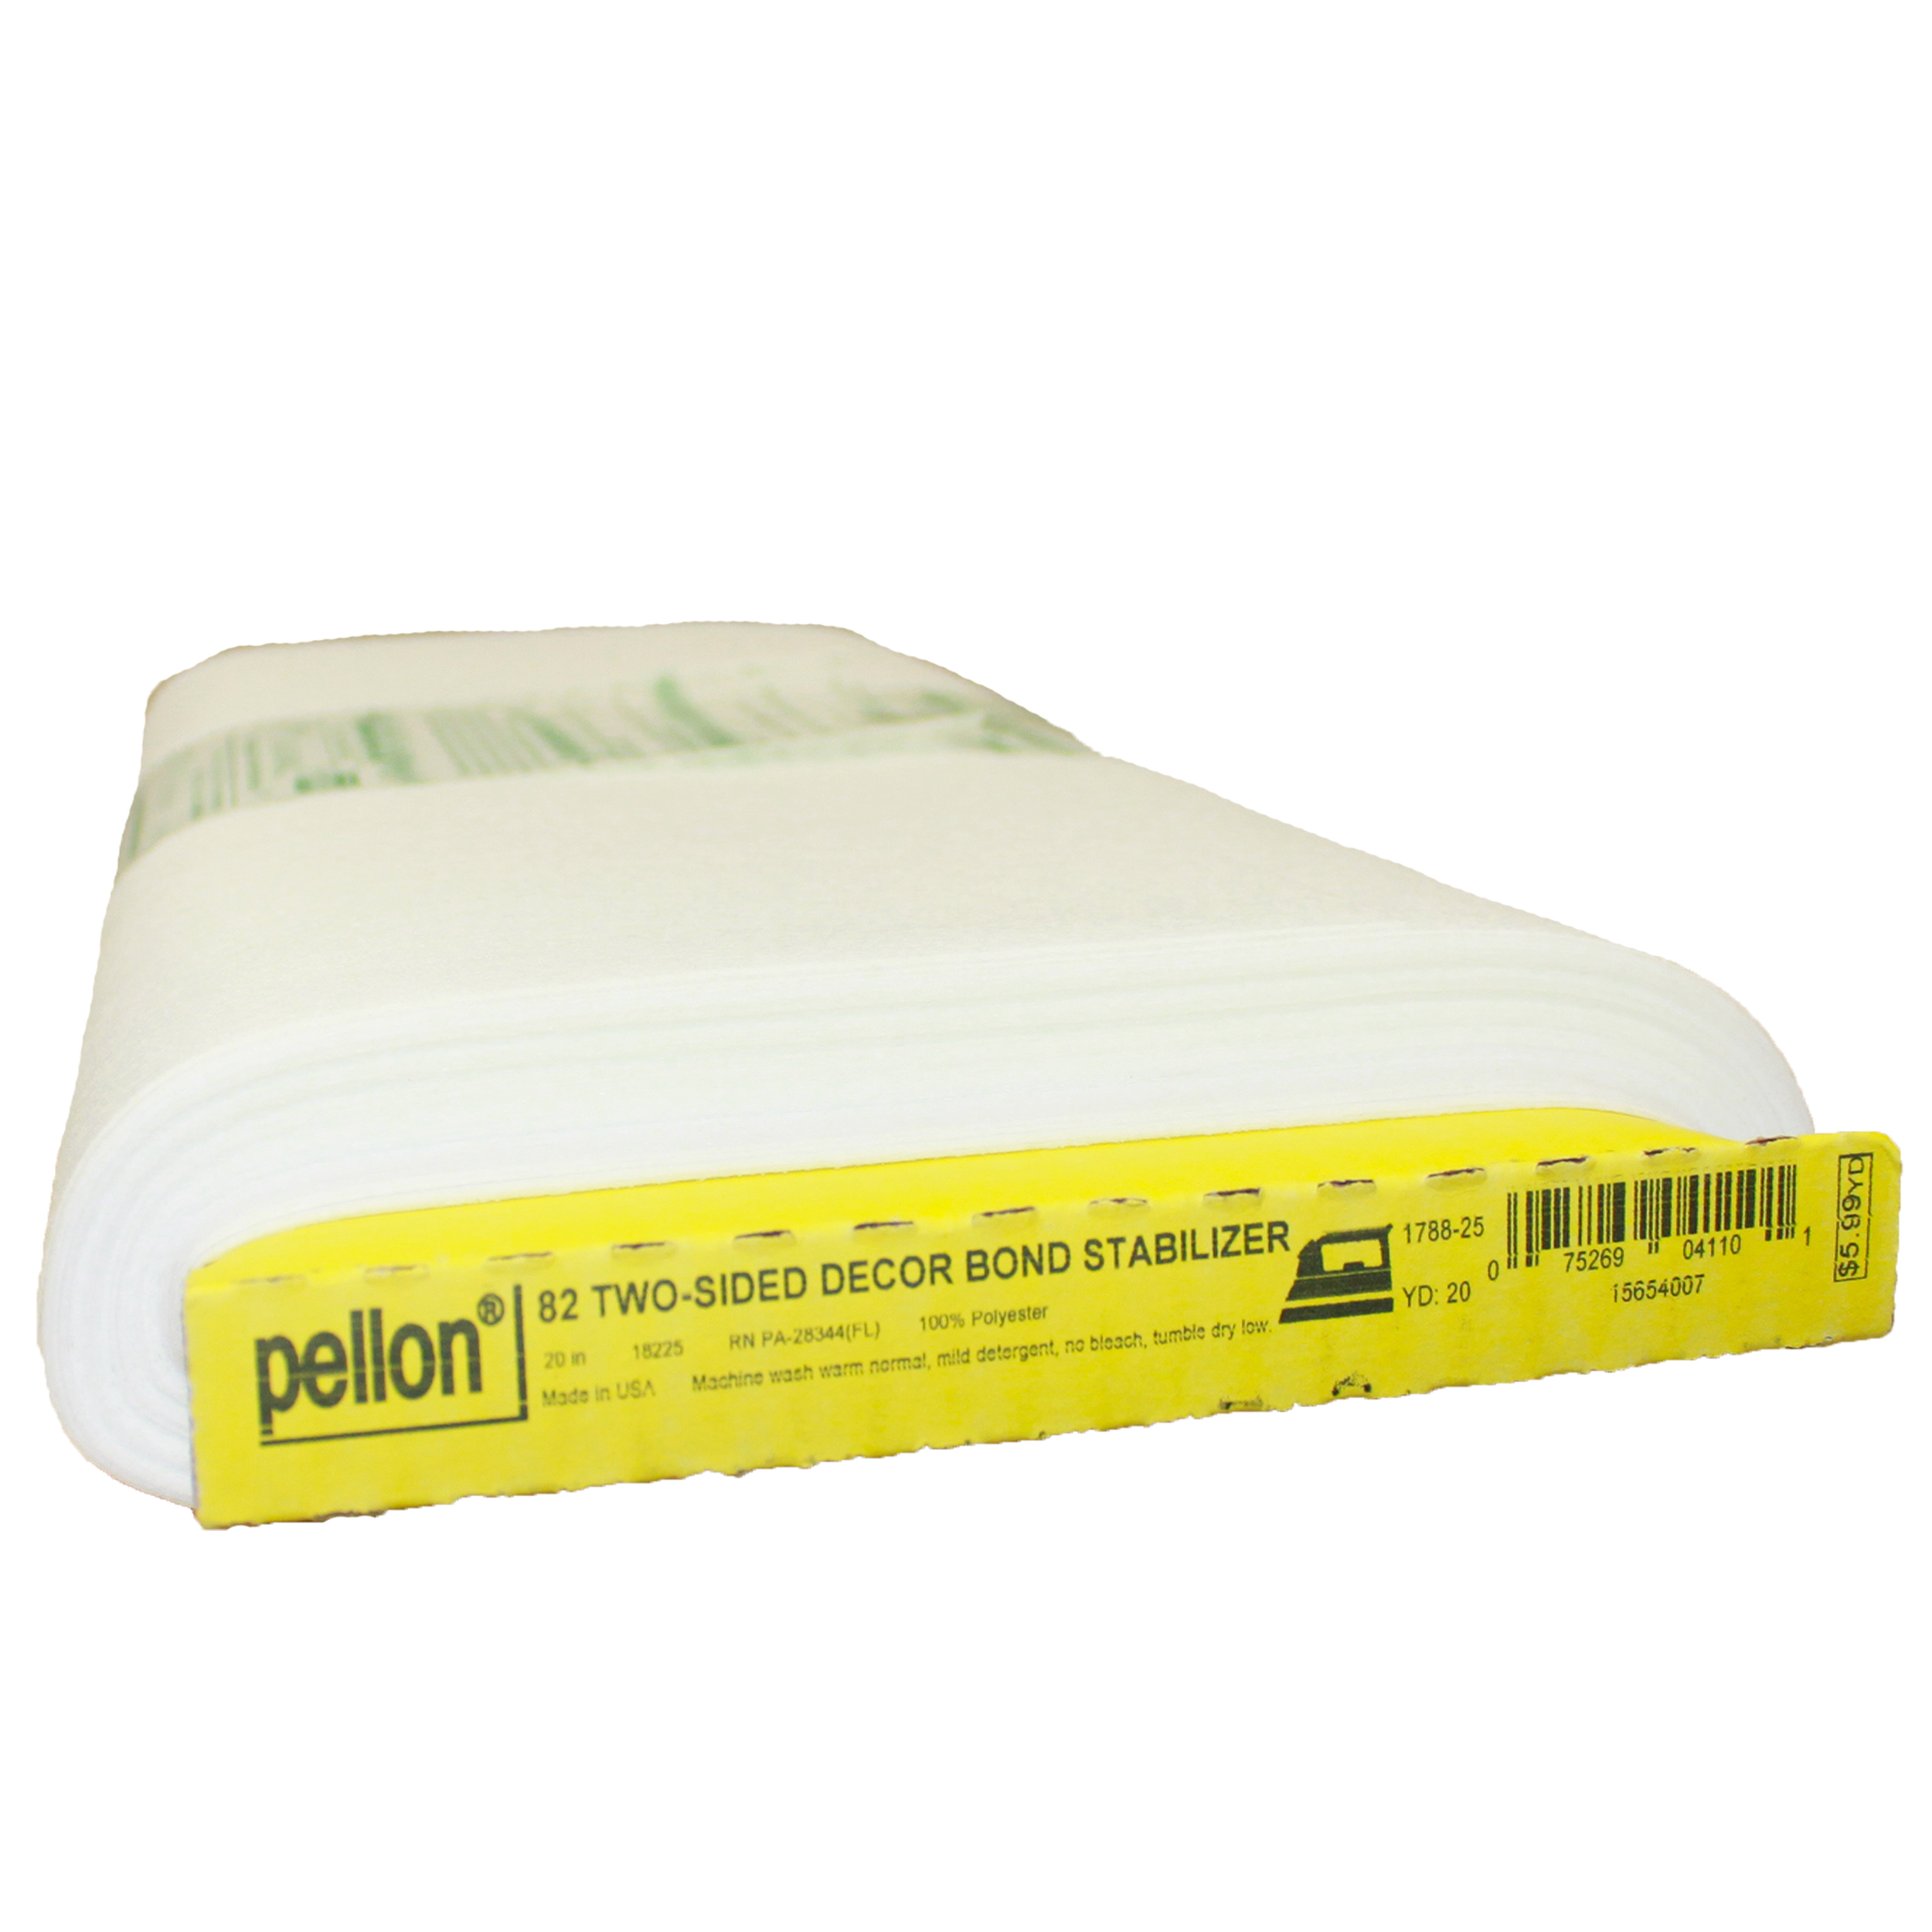 82 Two Sided Decor Bond Fusible Stabilizer Pellon Projects